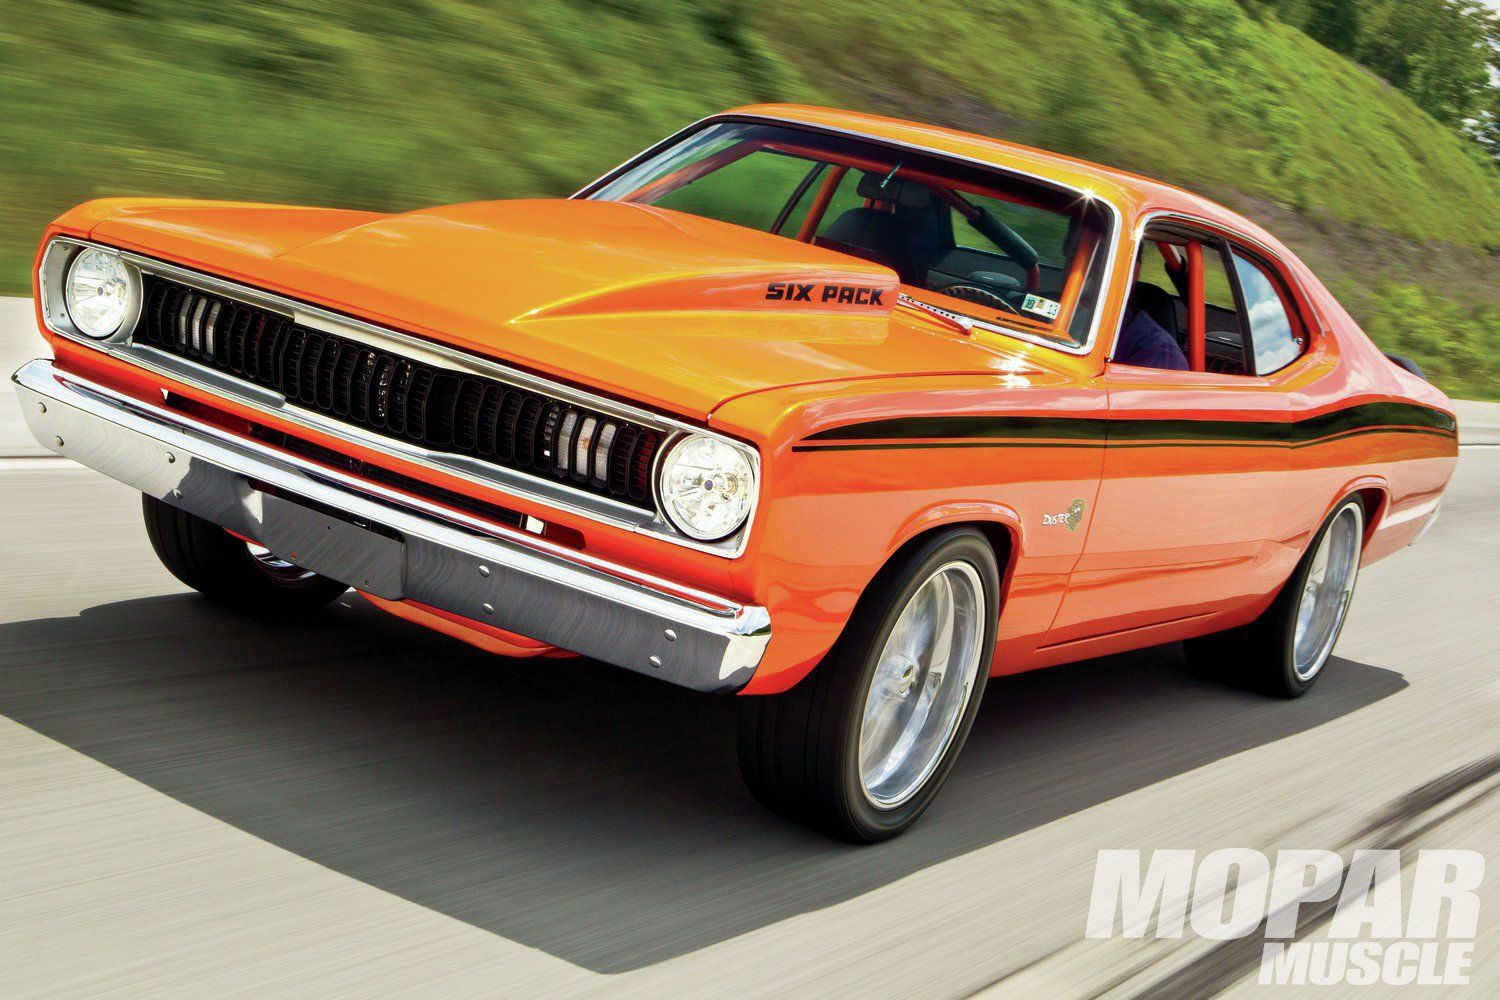 1970 Plymouth Duster - Realized Potential - Hot Rod Network ...